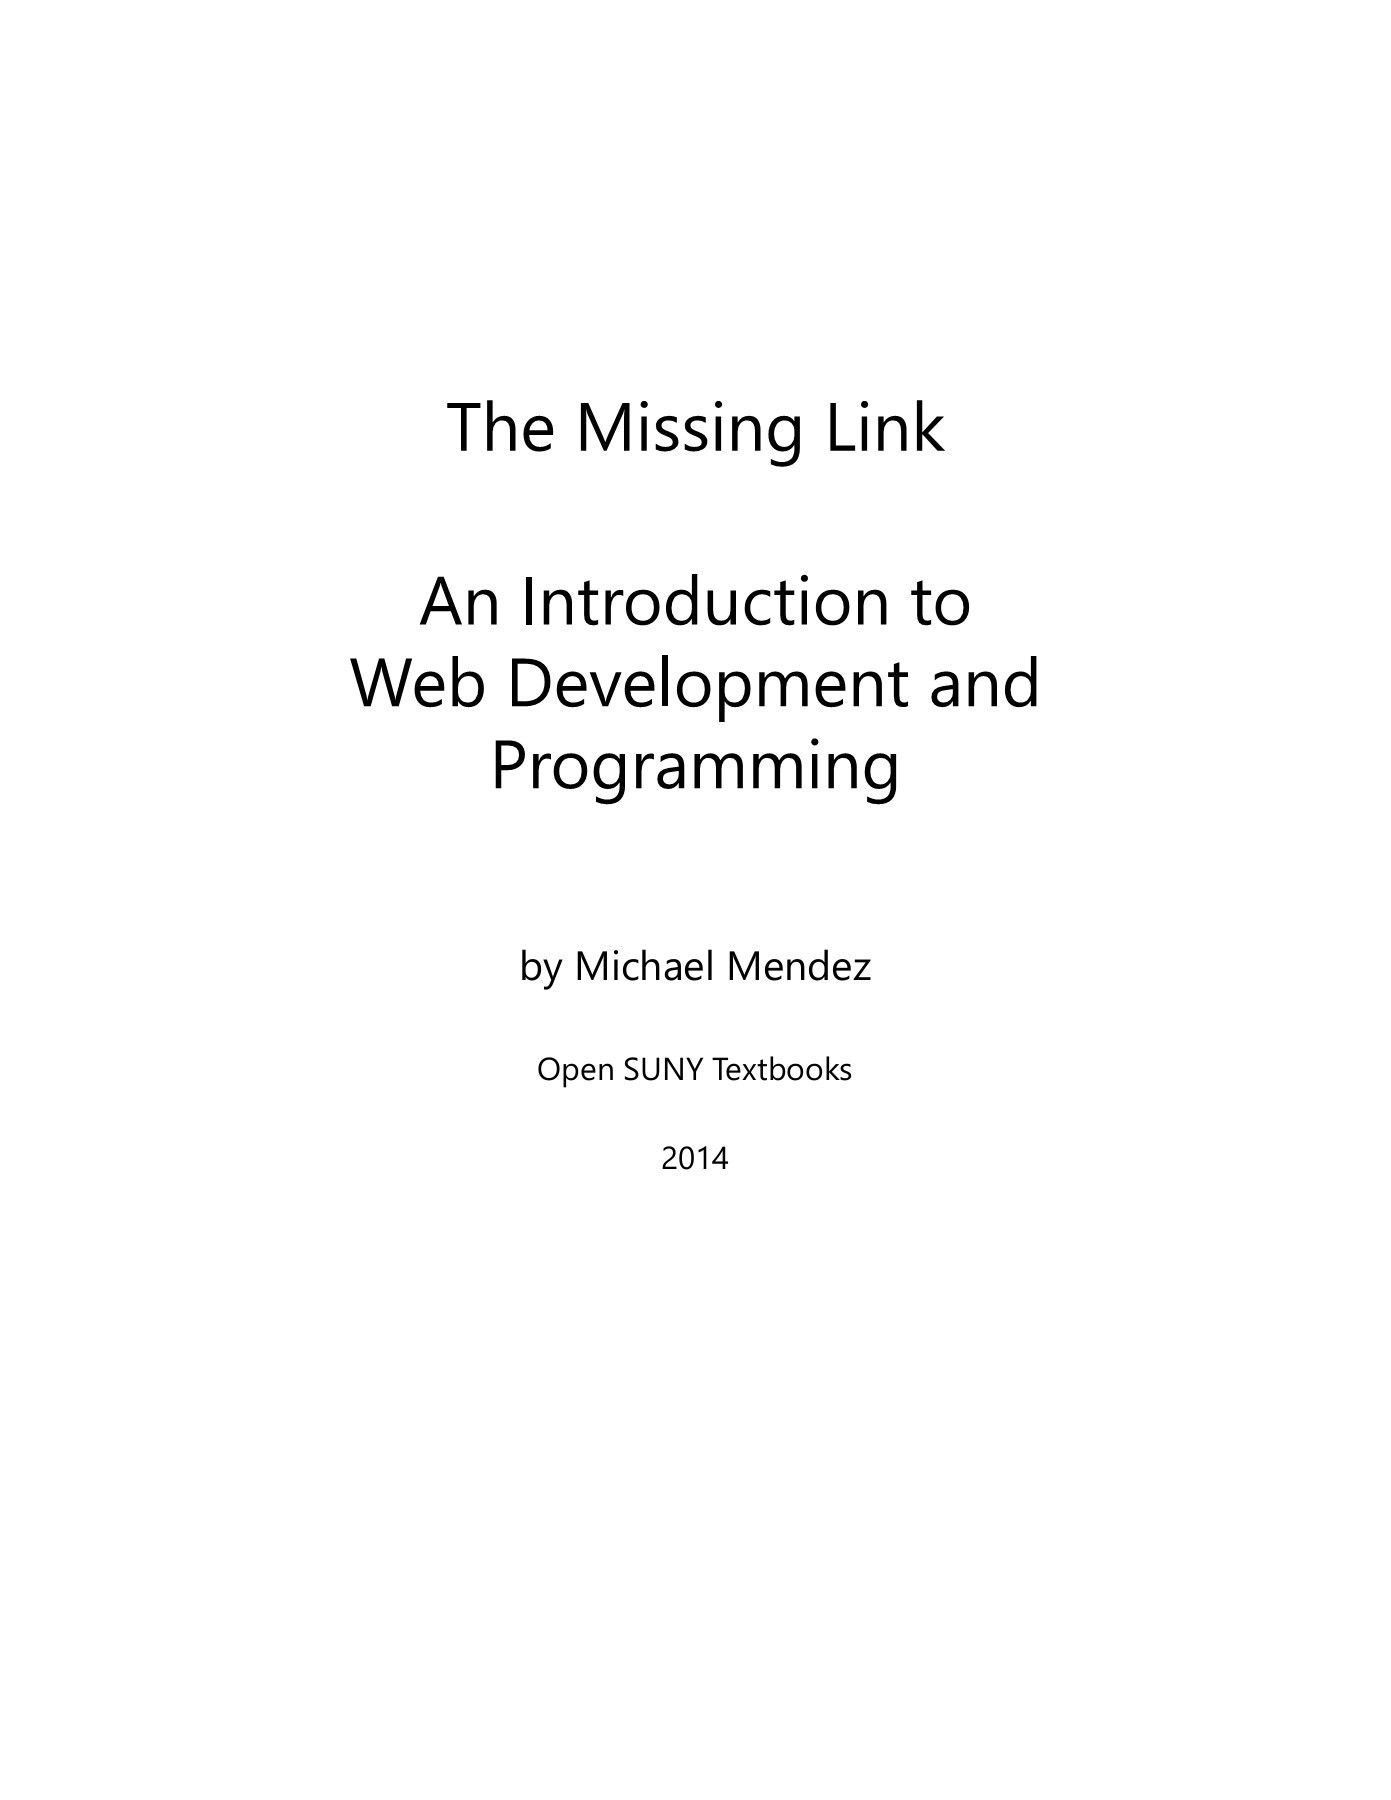 The Missing Link An Introduction To Web Development And